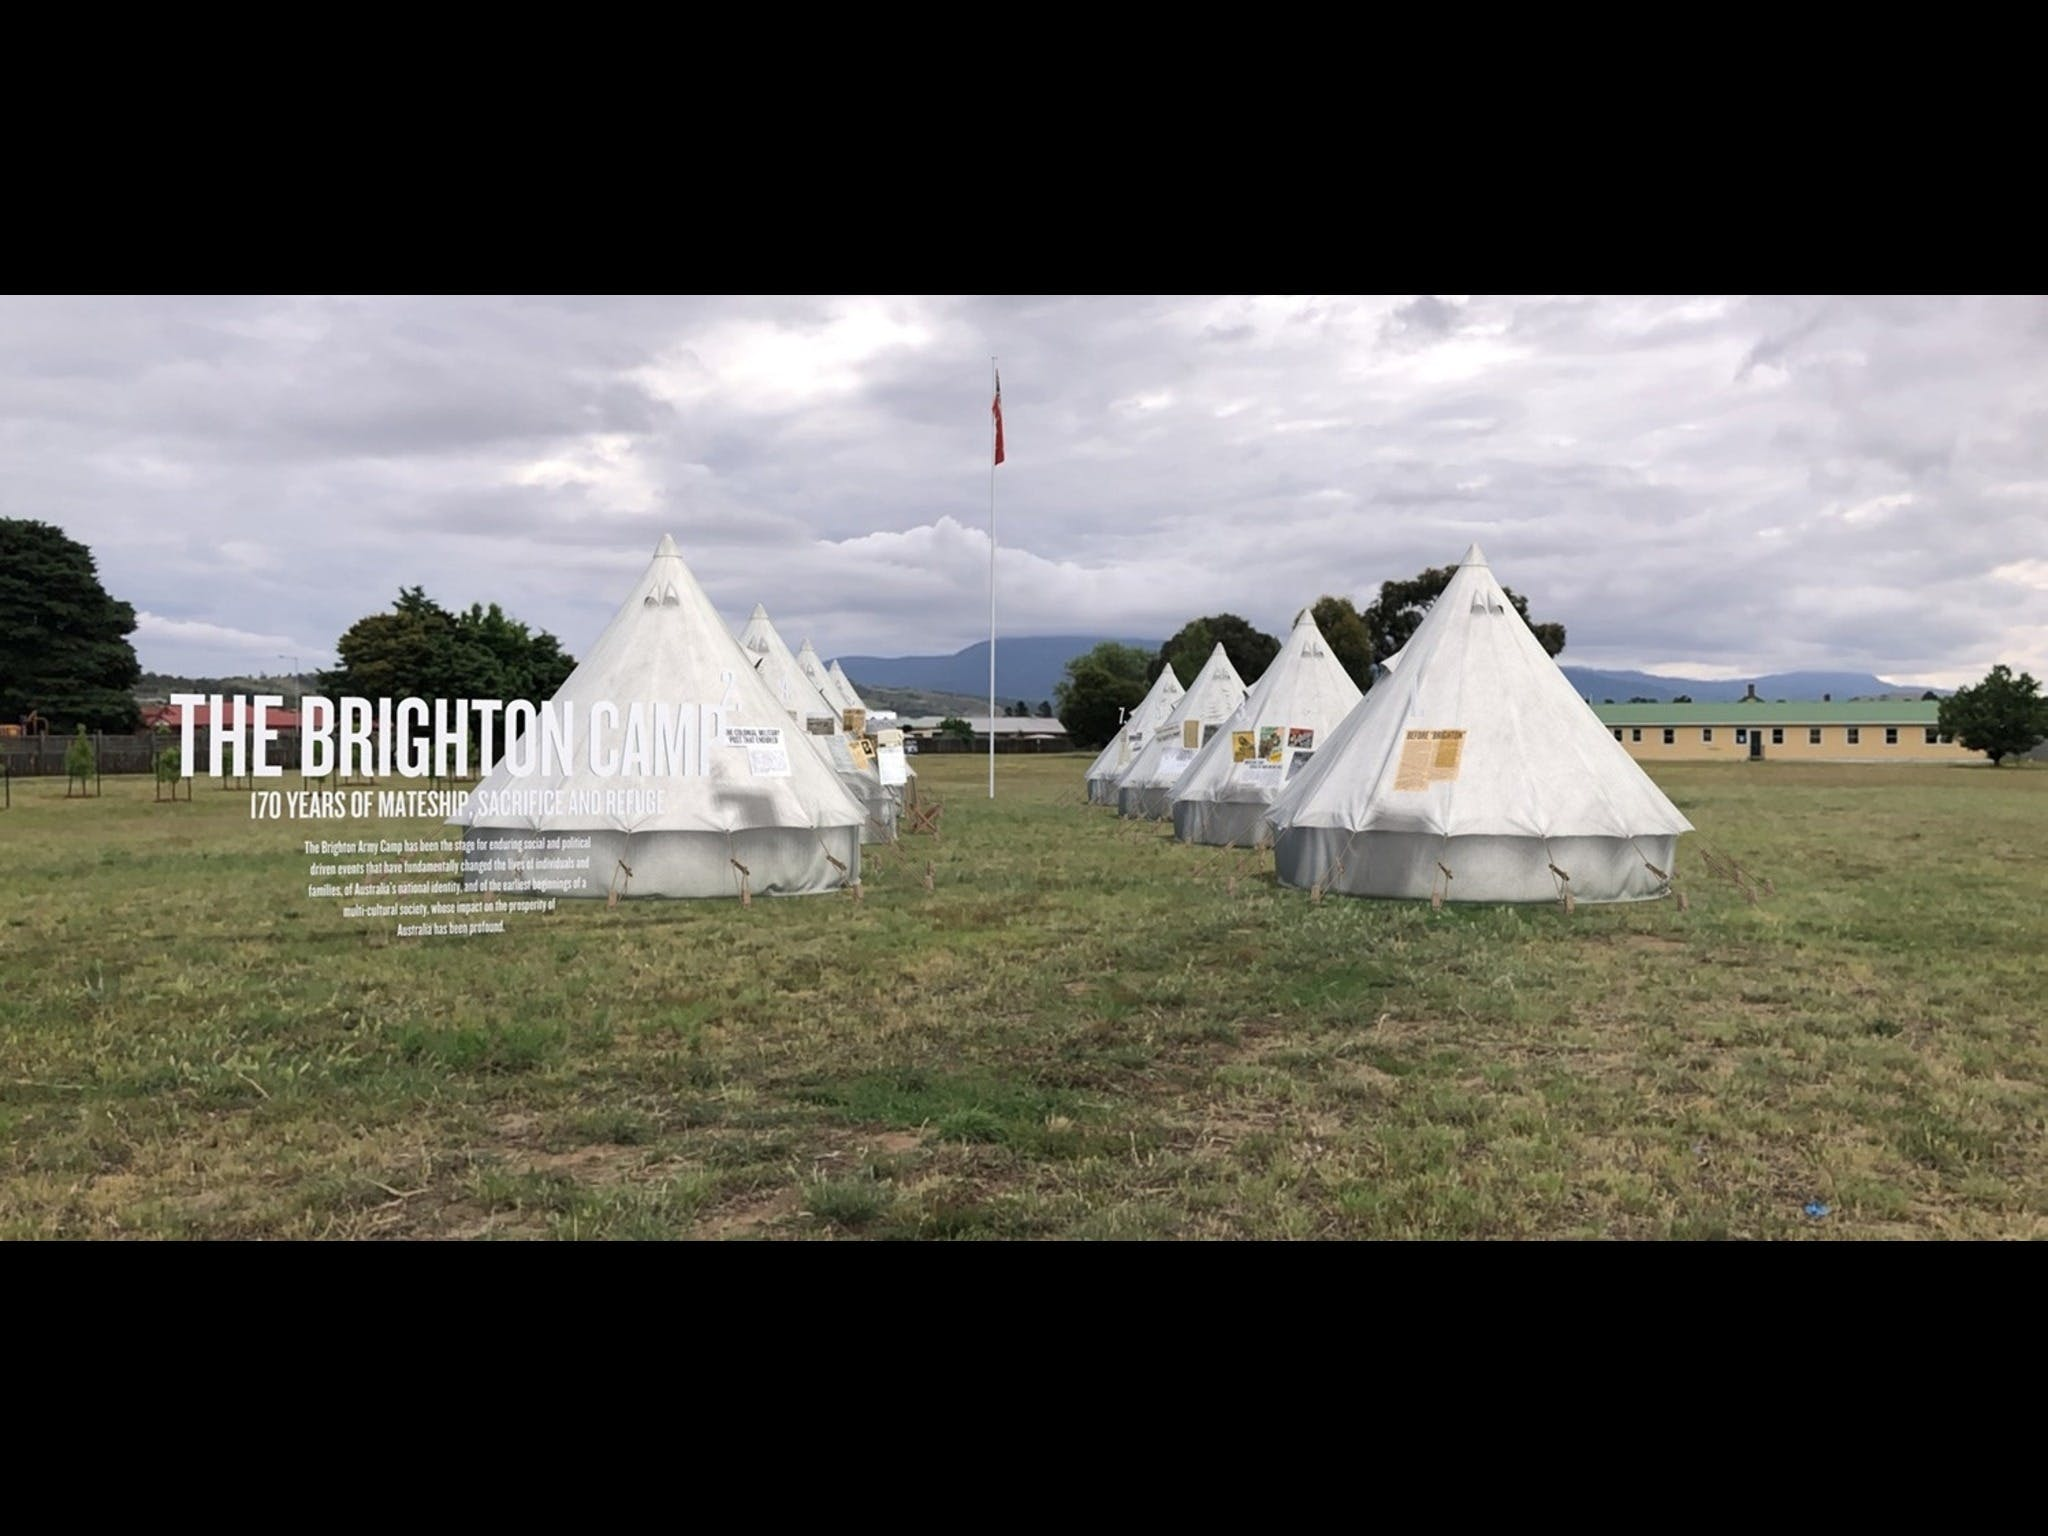 Brighton Army Camp - VIC Tourism